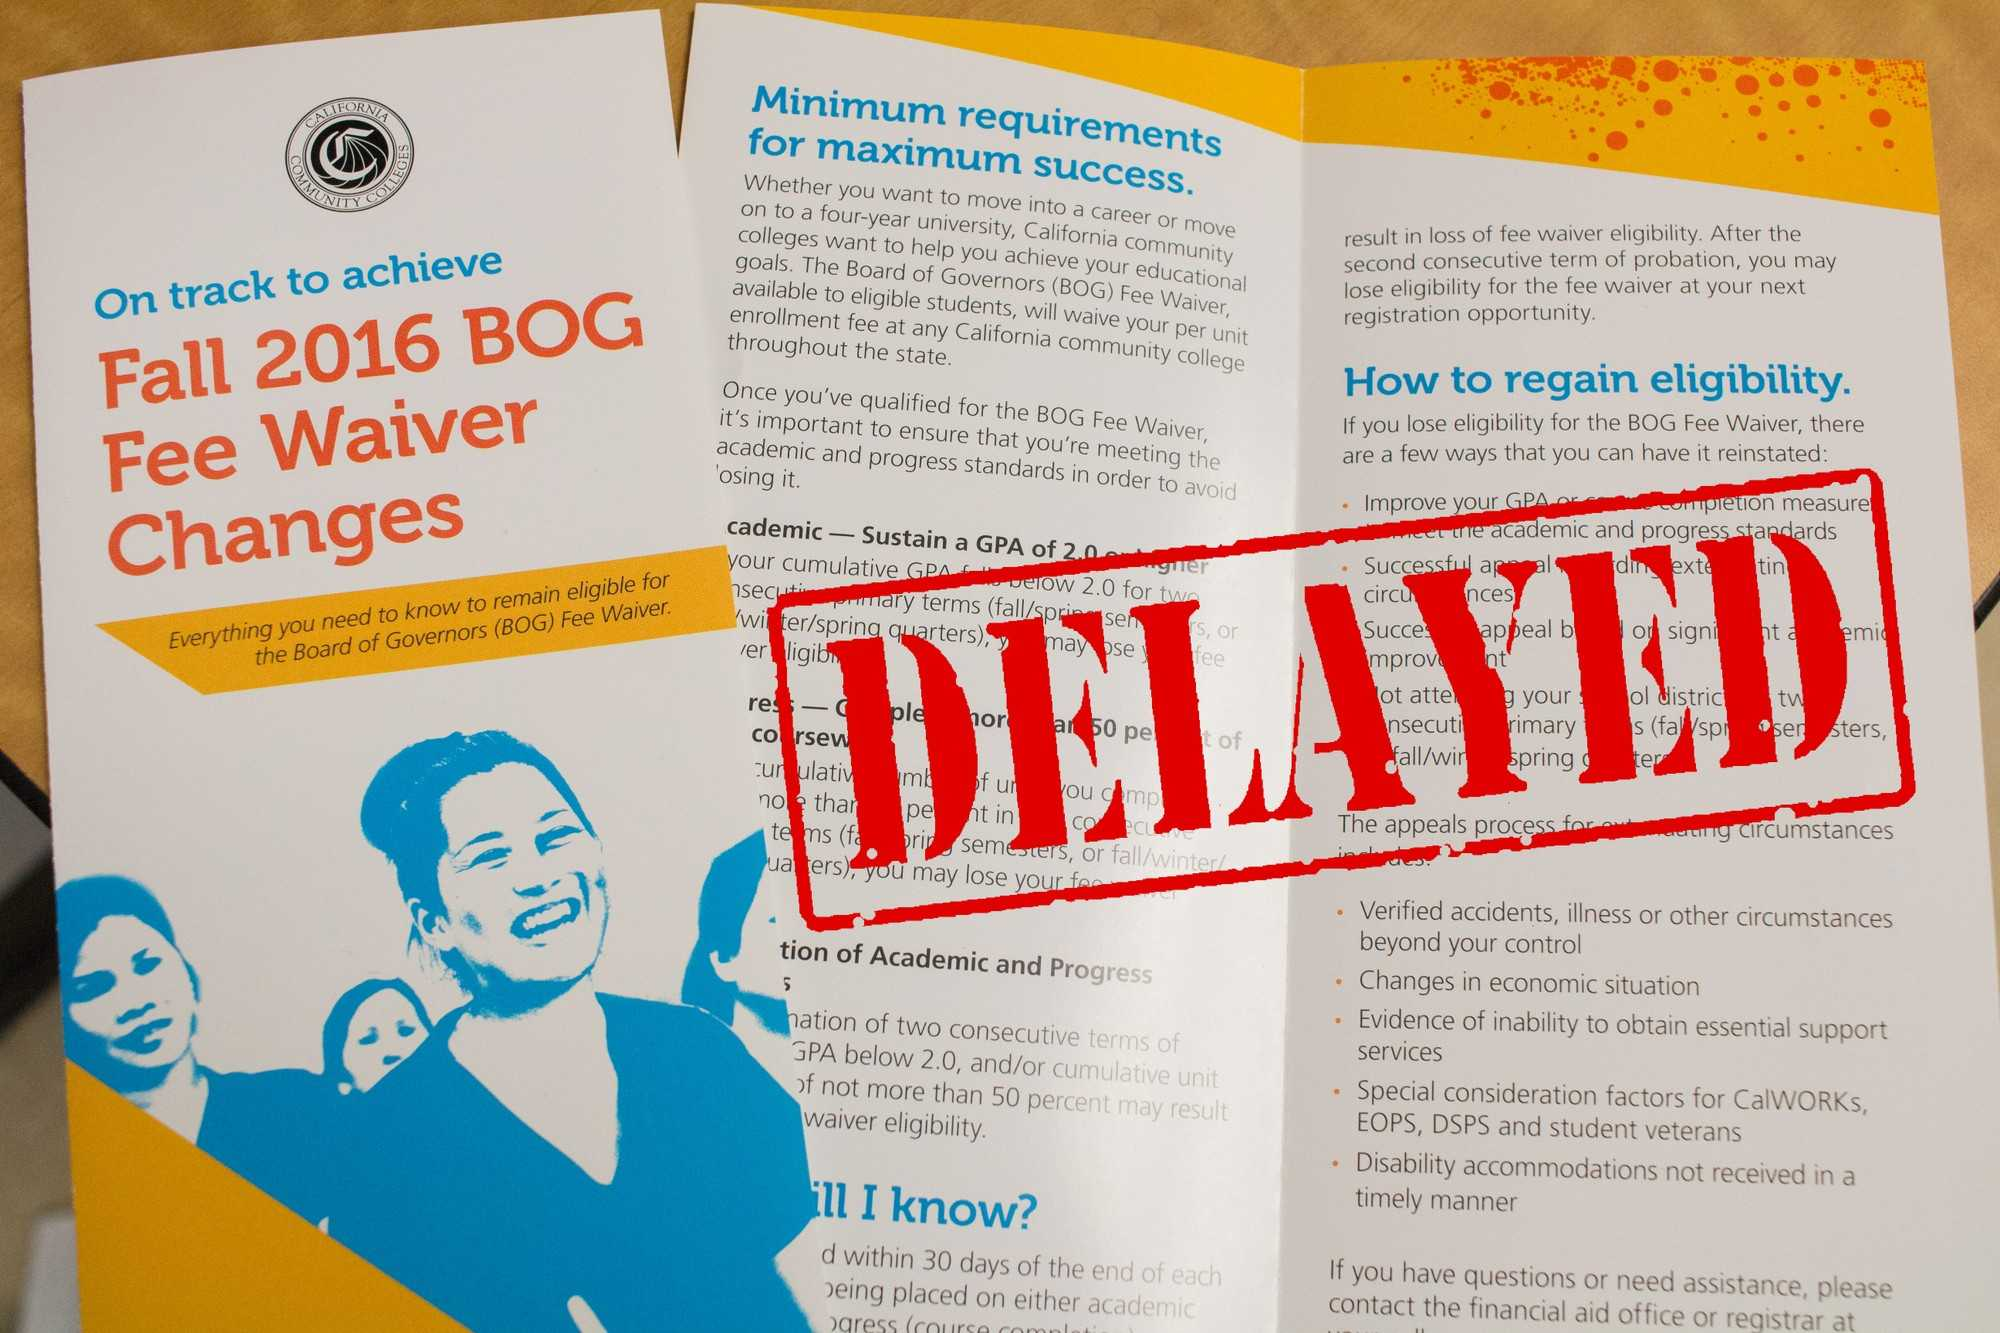 BOG Fee Waiver delayed due to new regulations coming into place for the next school year.